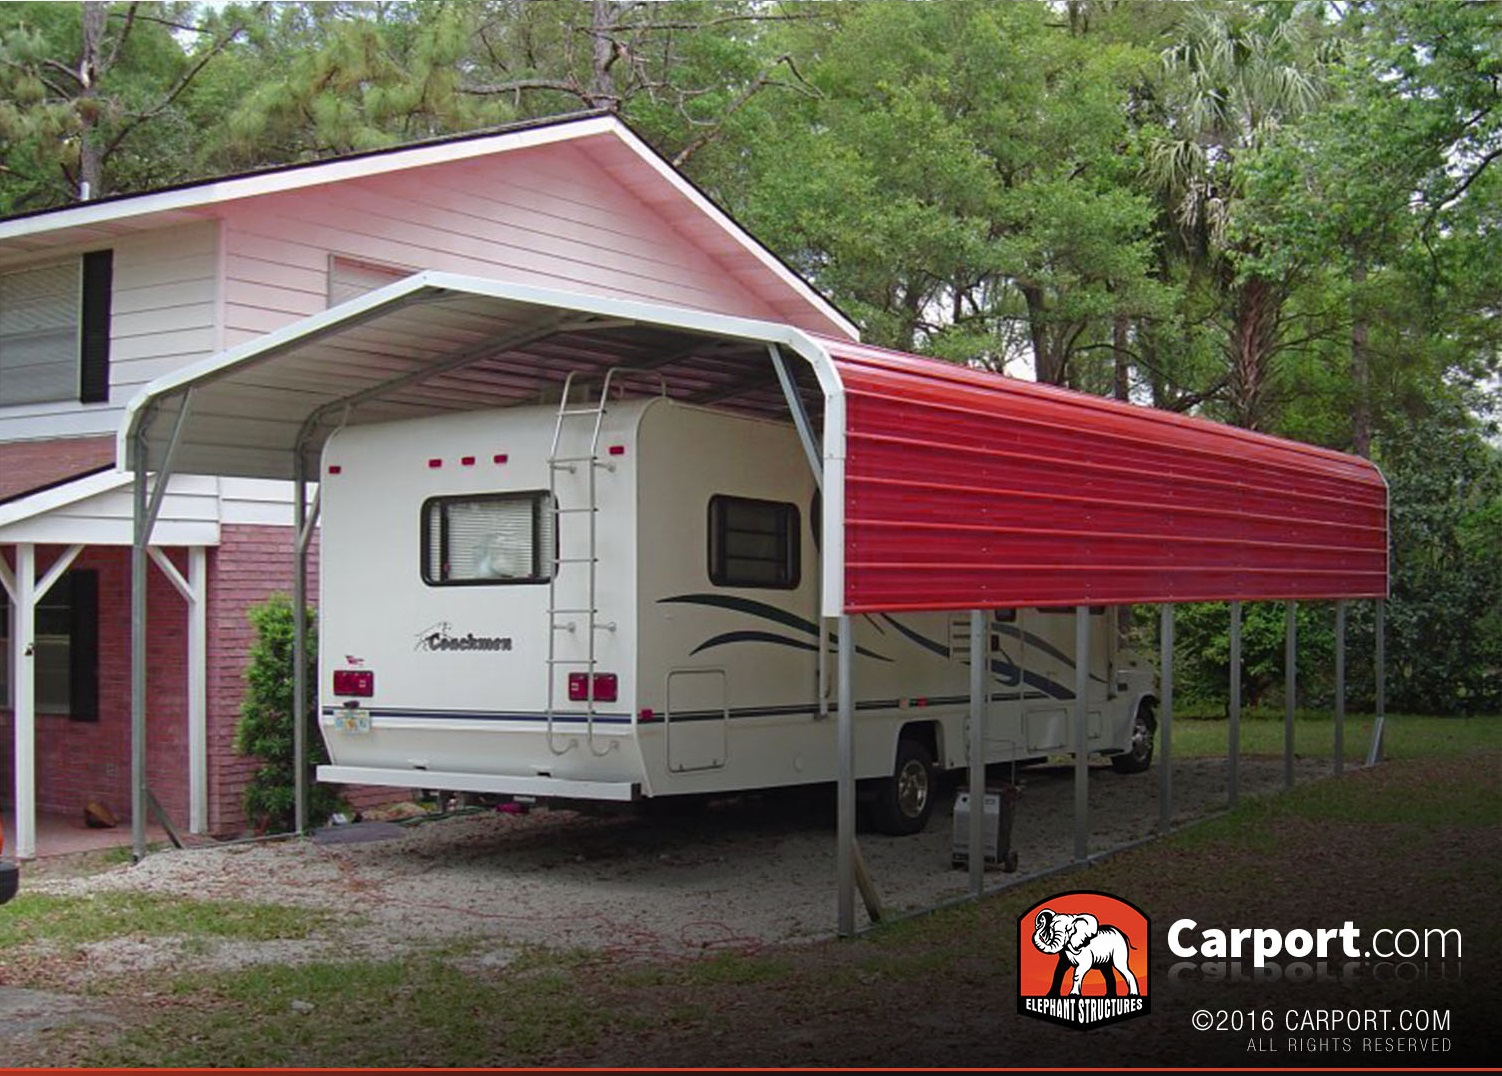 Rv carport 12 39 x 36 39 metal building shop online today for Rv shed ideas